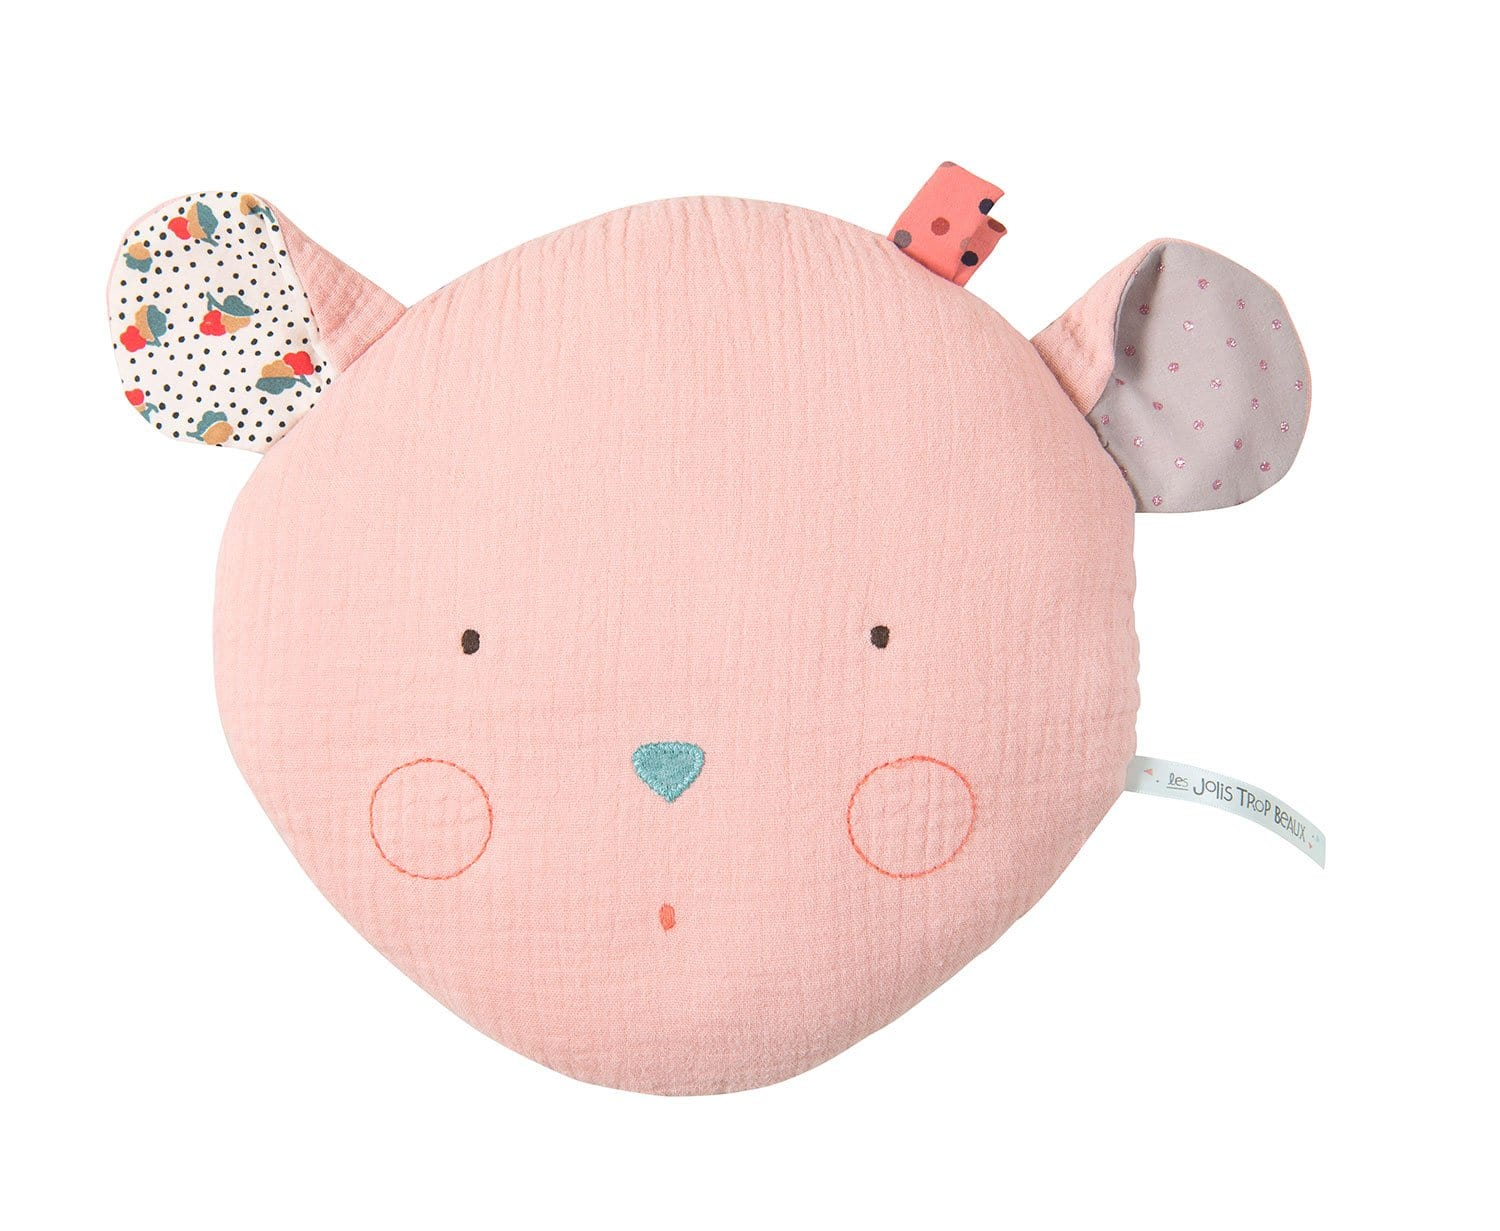 PINK MOUSE CUSHION